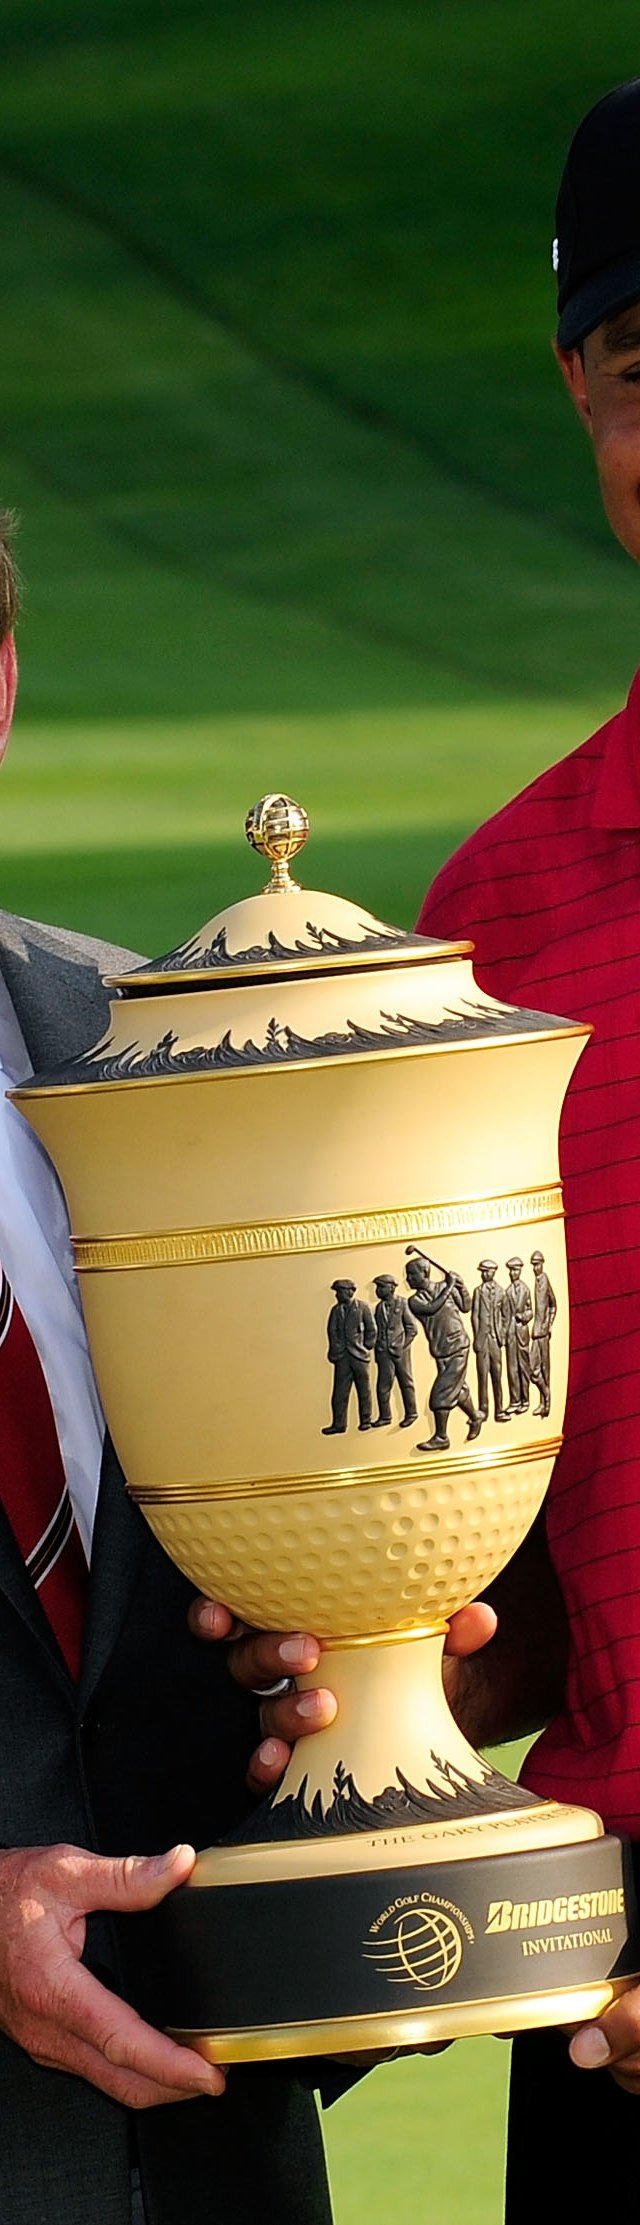 Tiger Woods and Tim Finchem, Commissioner of the PGA Tour, holds the Gary Player trophy following the final round of the WGC-Bridgestone Invitational on the South Course at Firestone Country Club.